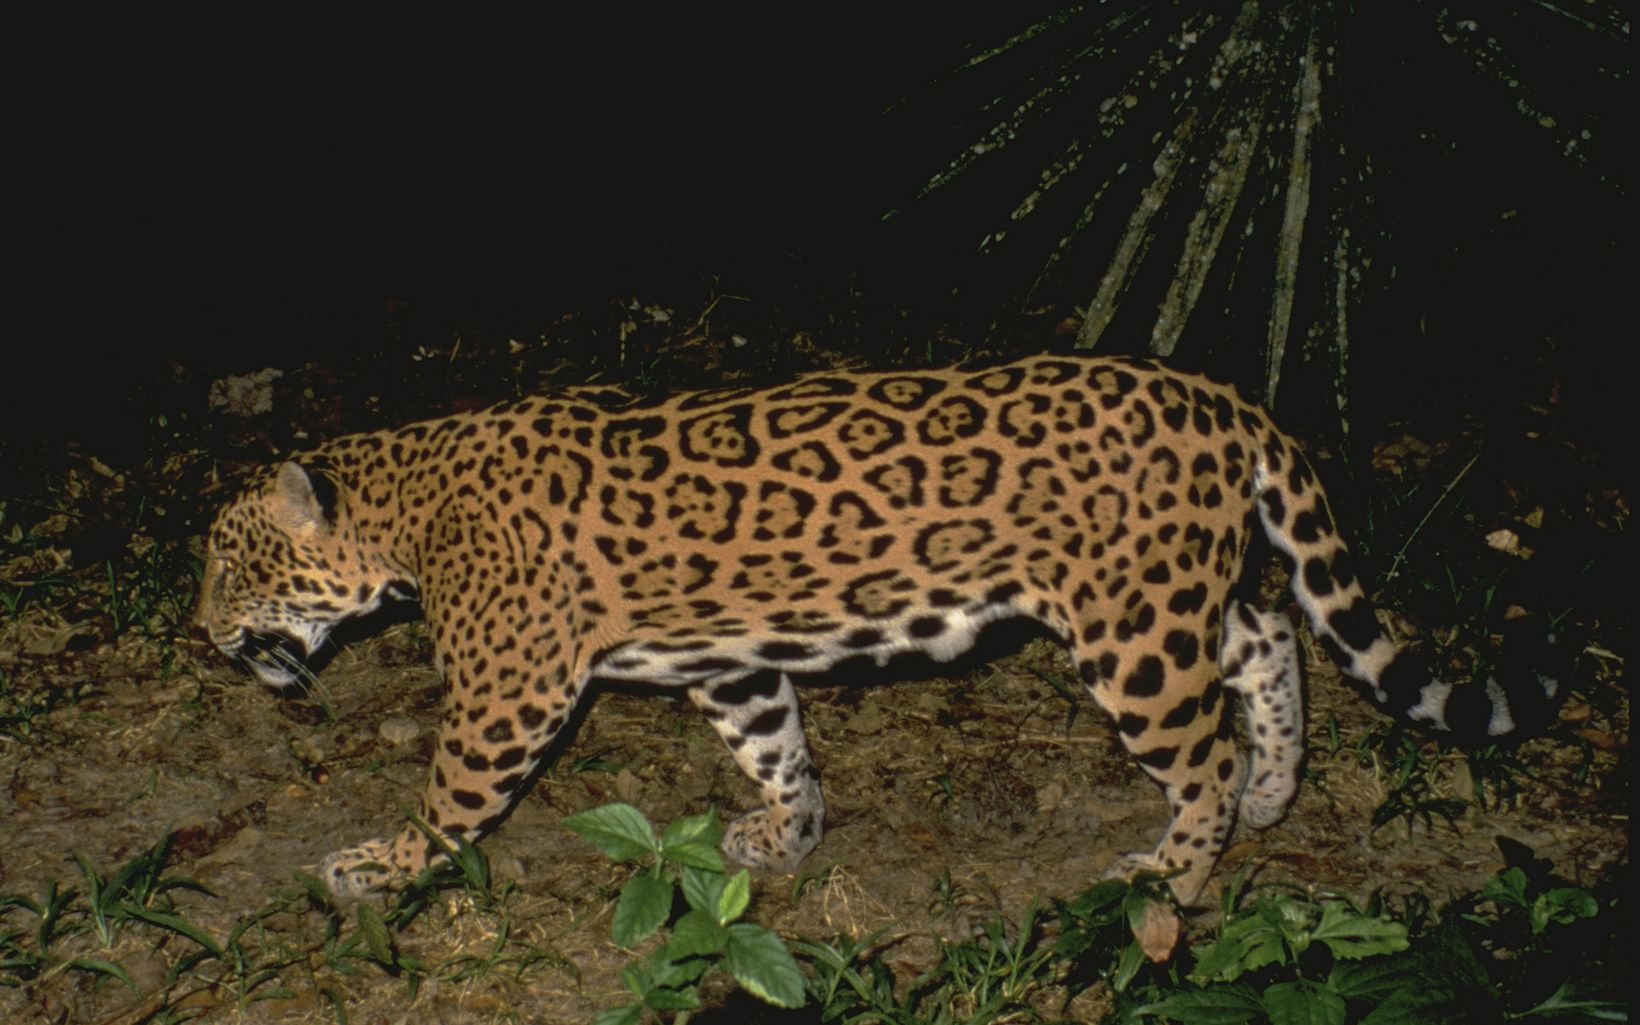 Jaguar at Belize Zoo in Belize, Central America.